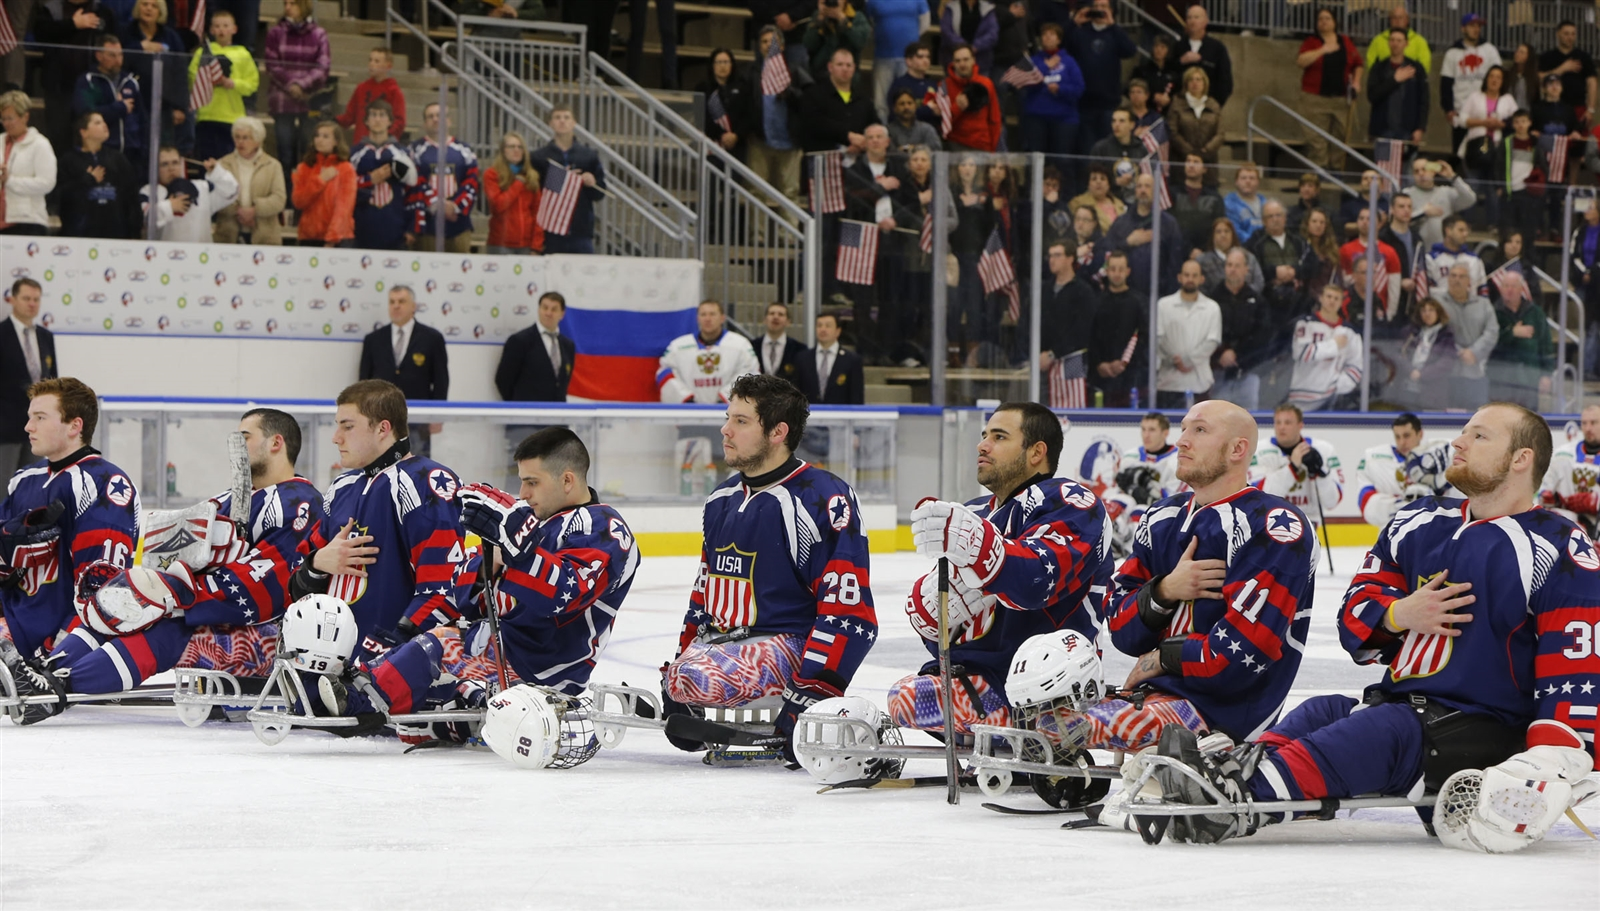 The U.S. Men's National Sled Hockey team will play a Border Series with Canada in Buffalo. (Harry Scull Jr./Buffalo News)